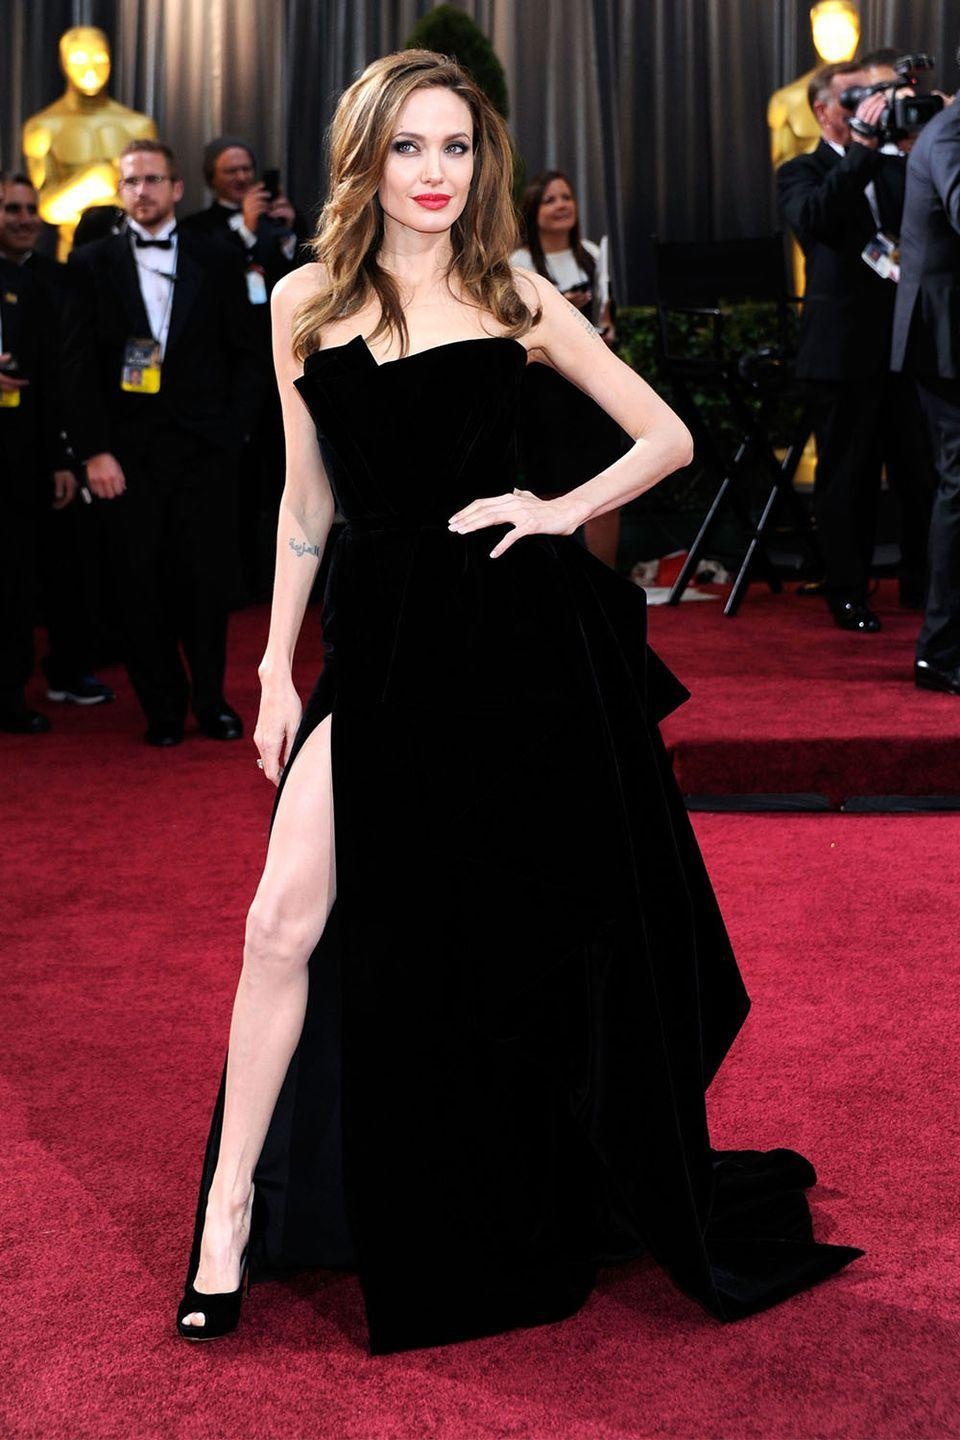 """<p>The dress that spawned a million memes. Angeline Jolie's strong stance in her Atelier Versace gown with her left leg became known as """"Angie leg.""""</p>"""